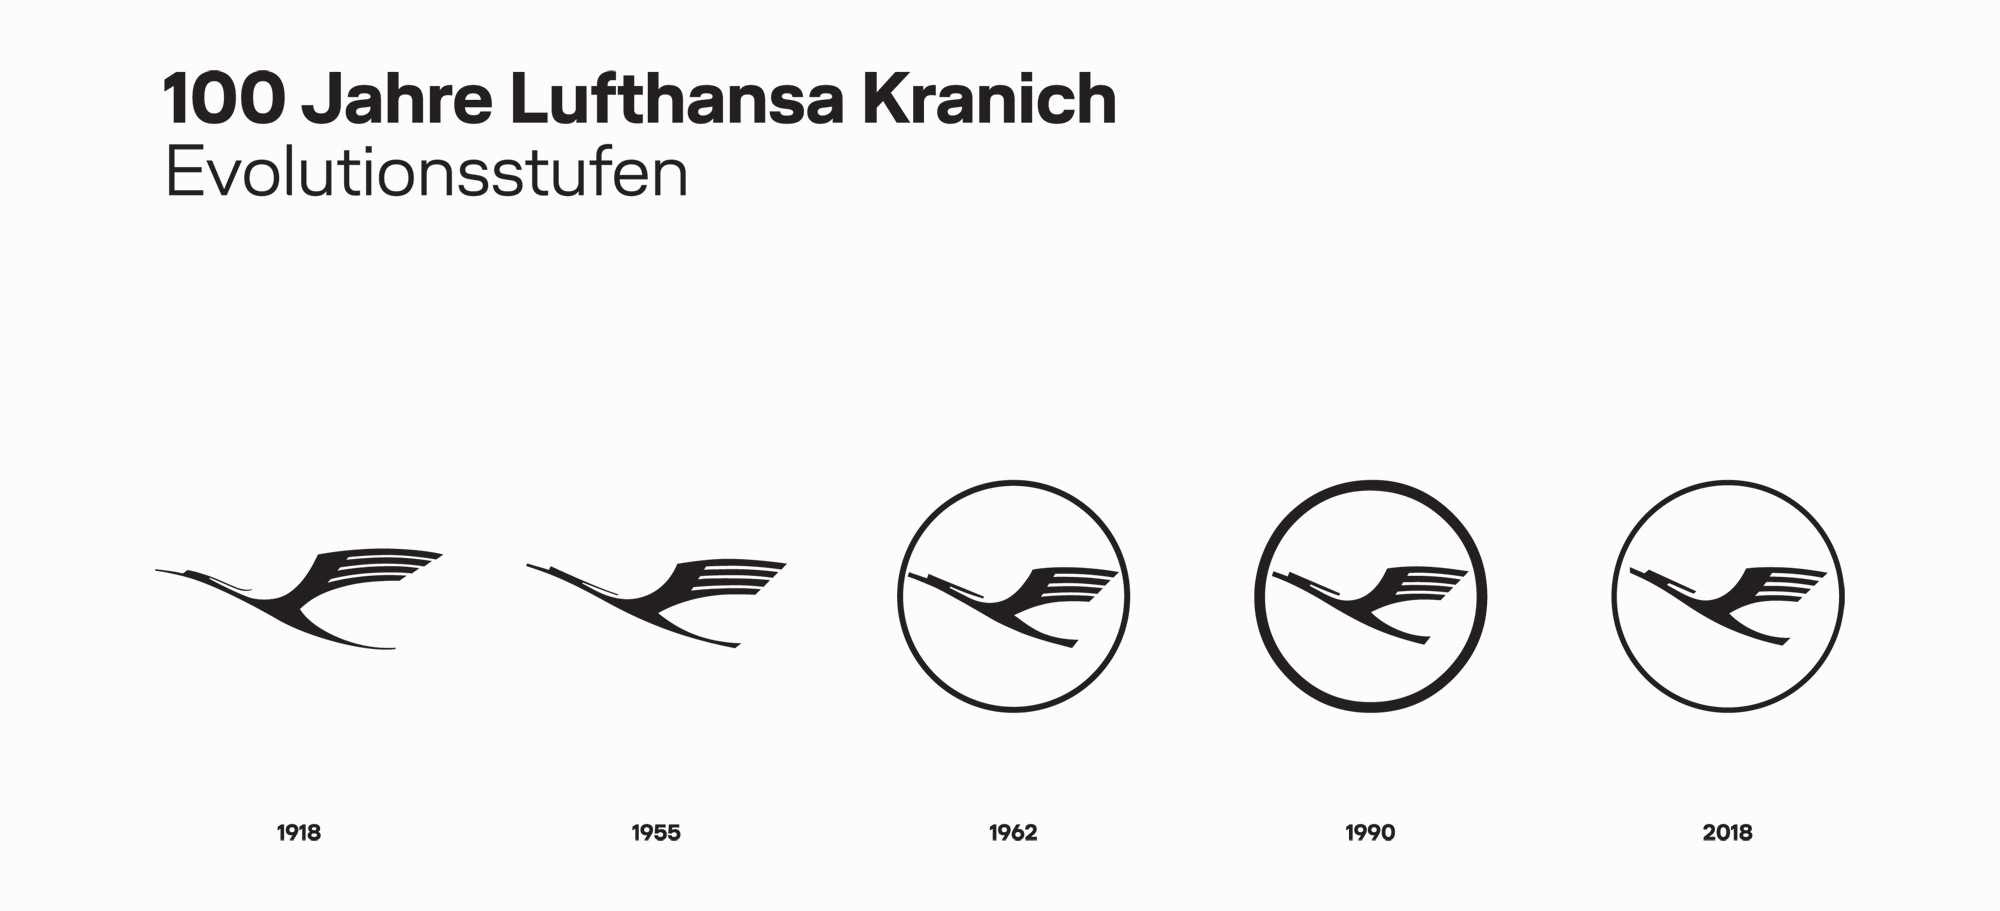 Evolution of the Lufthansa Crane